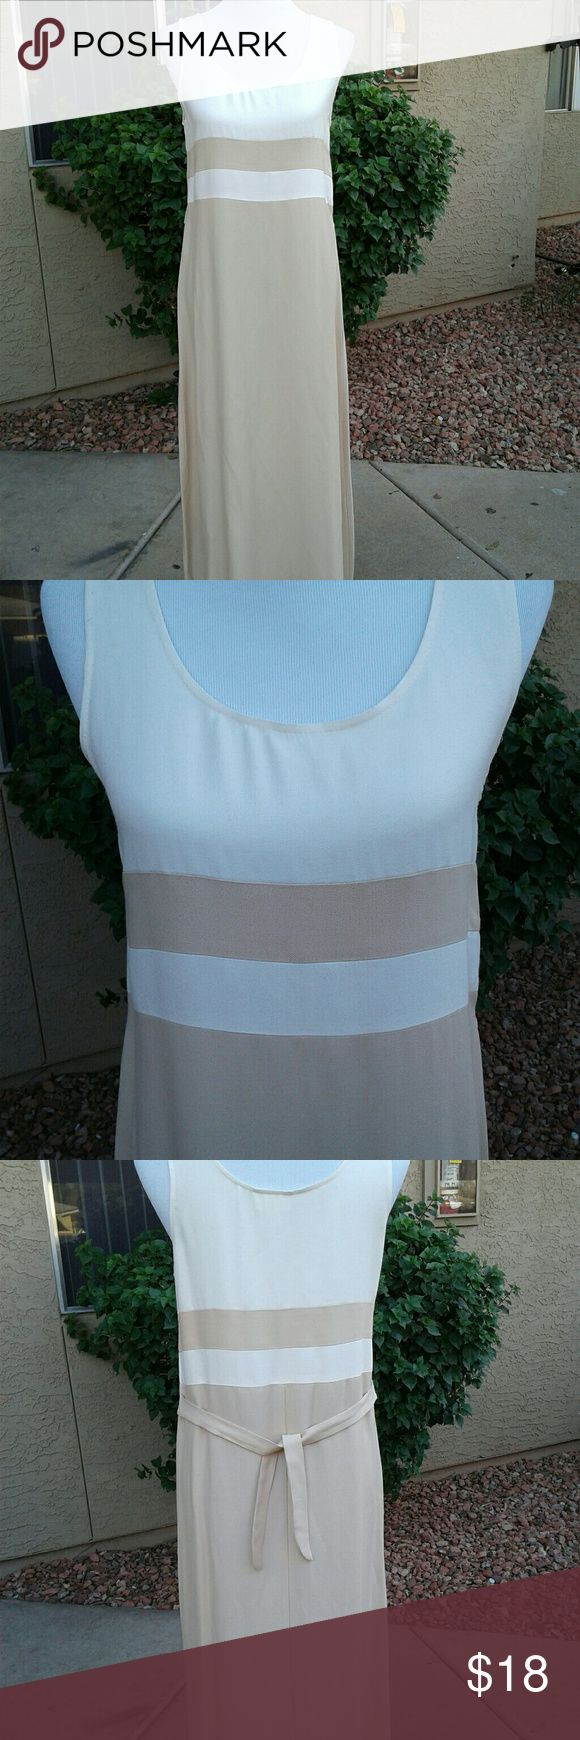 CREAM/BEIGE DRESS SIZE SMALL NWOT THIS DRESS HAS NEVER BEEN WORN... GORGEOUS SUMMER DRESS...SIMPLE YET CLASSY... GREAT FOR CHURCH NIGHT OUT DRESS IT UP WITH HEELS OR CASUAL WITH SANDALS CONNIE CHOI Dresses Maxi